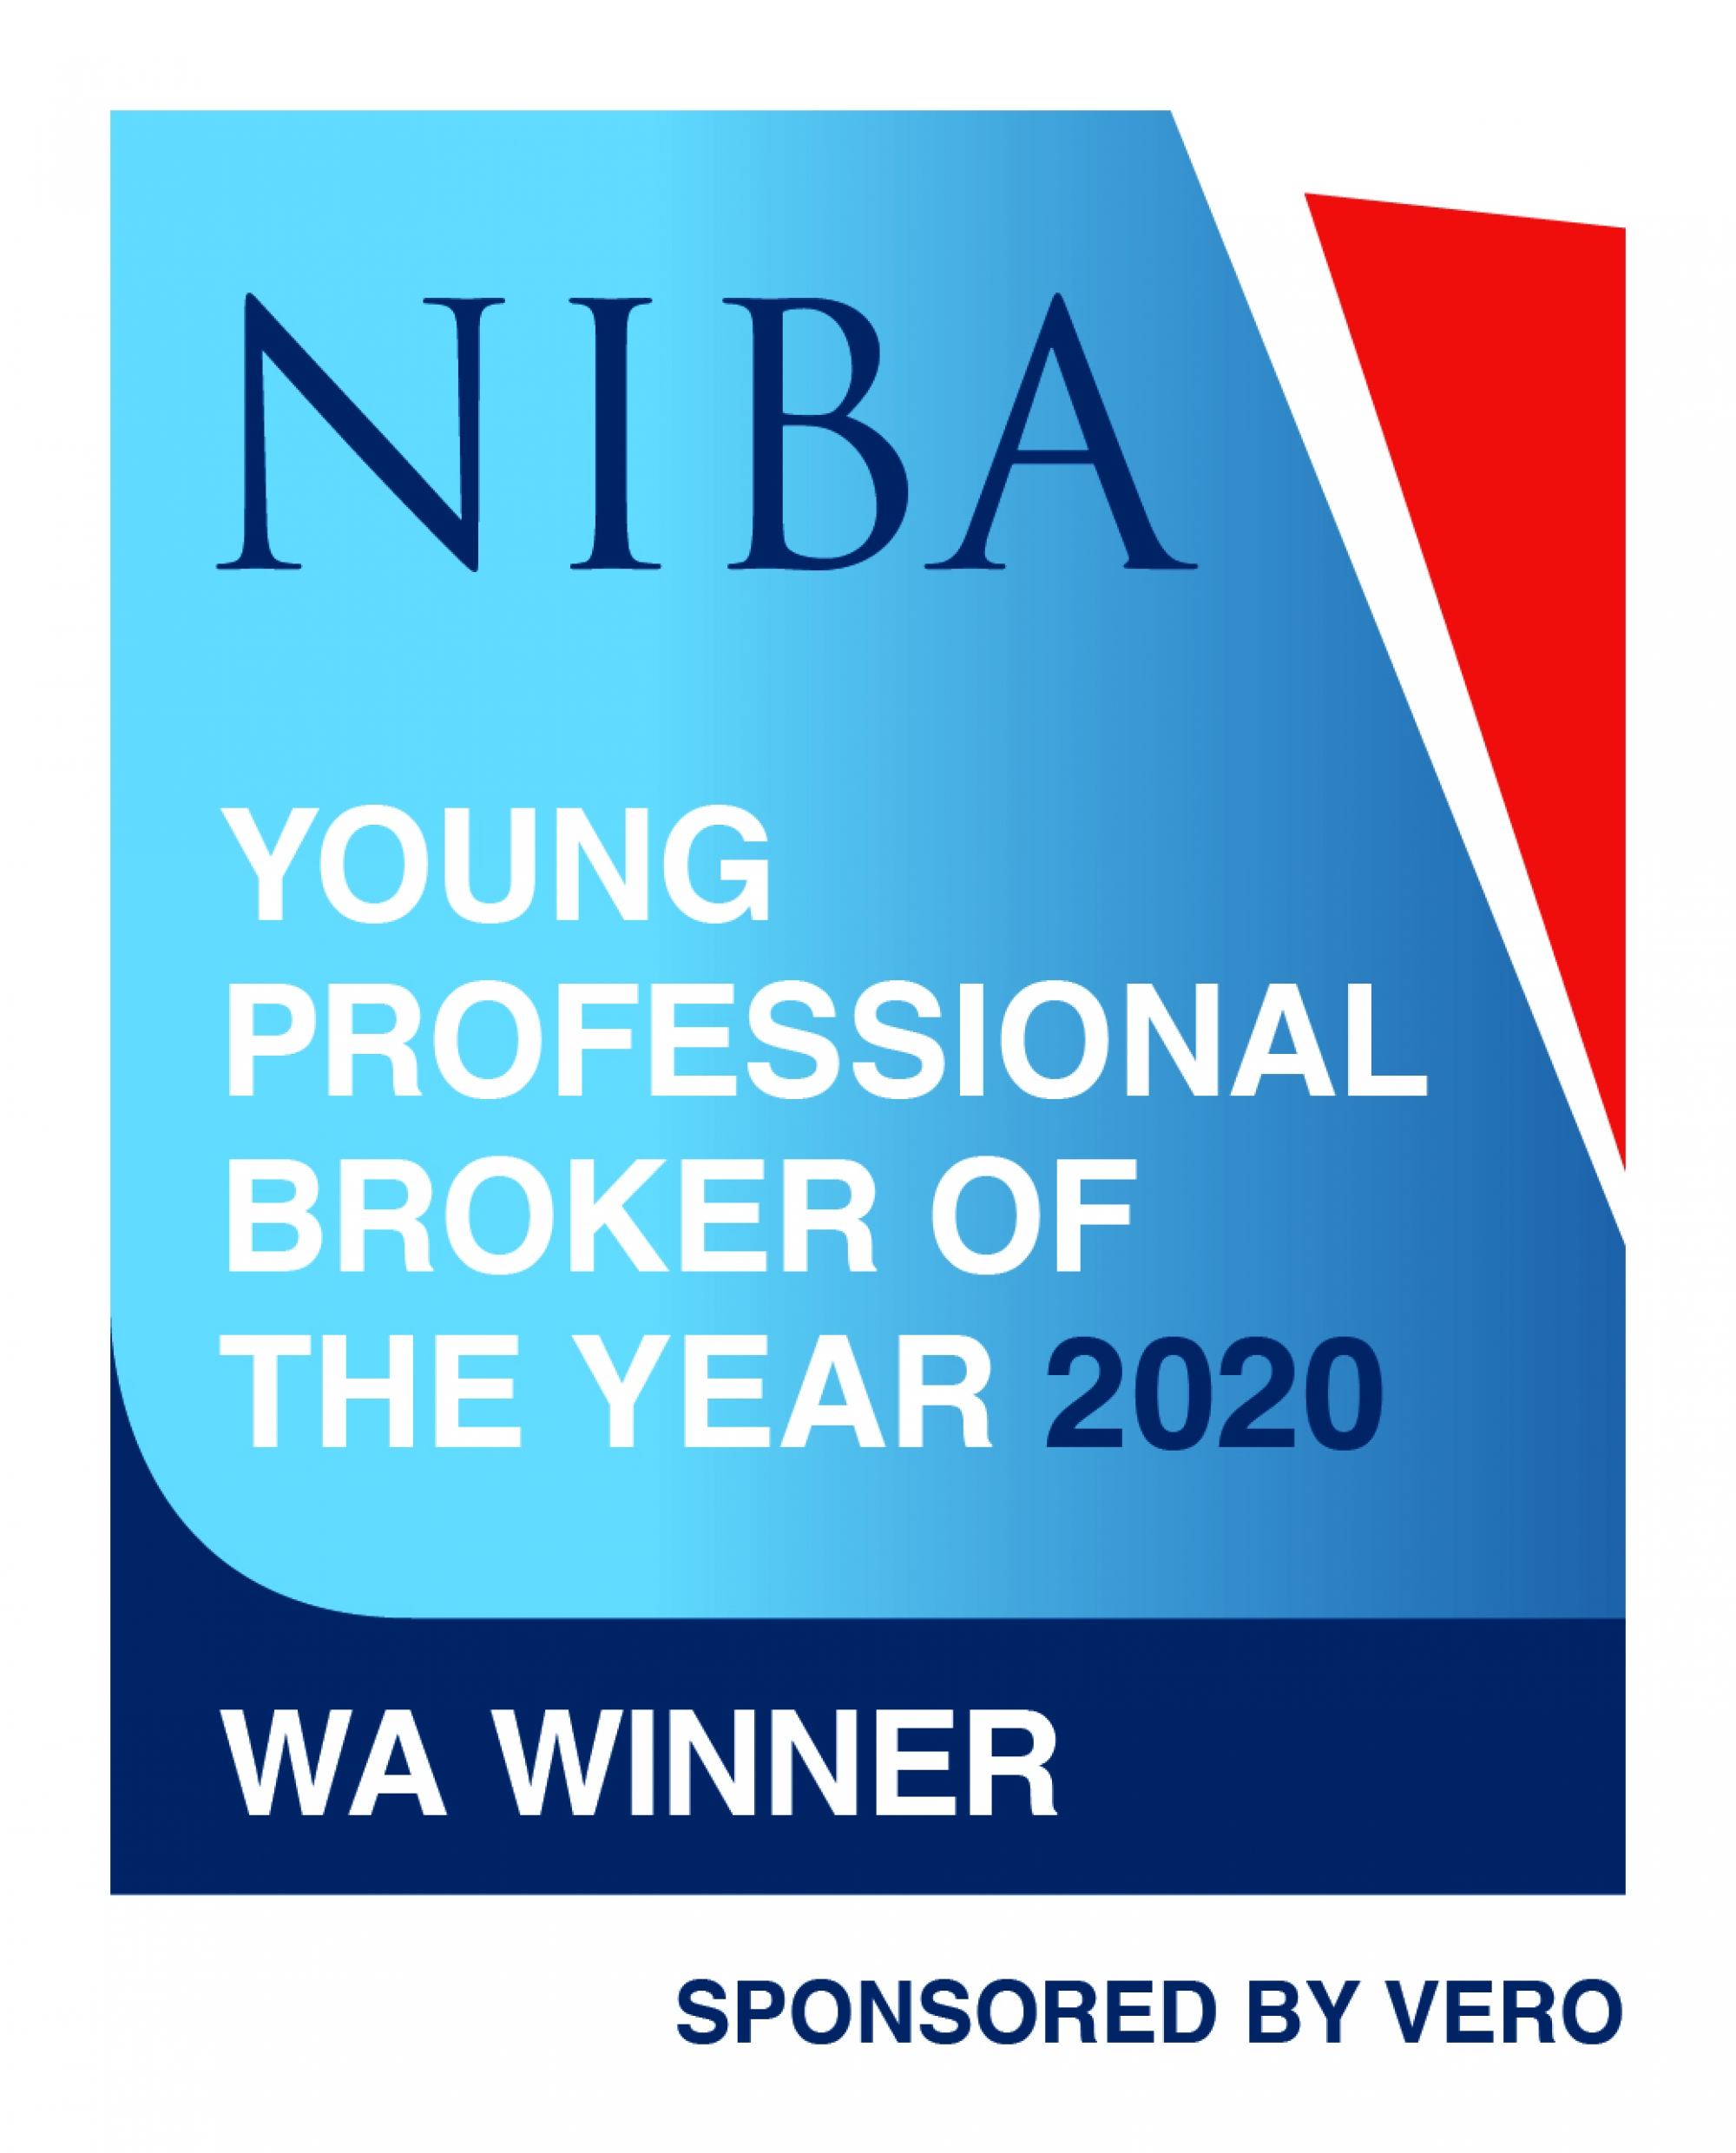 NIBA WA Winner - Young Professional Broker of the Year 2020